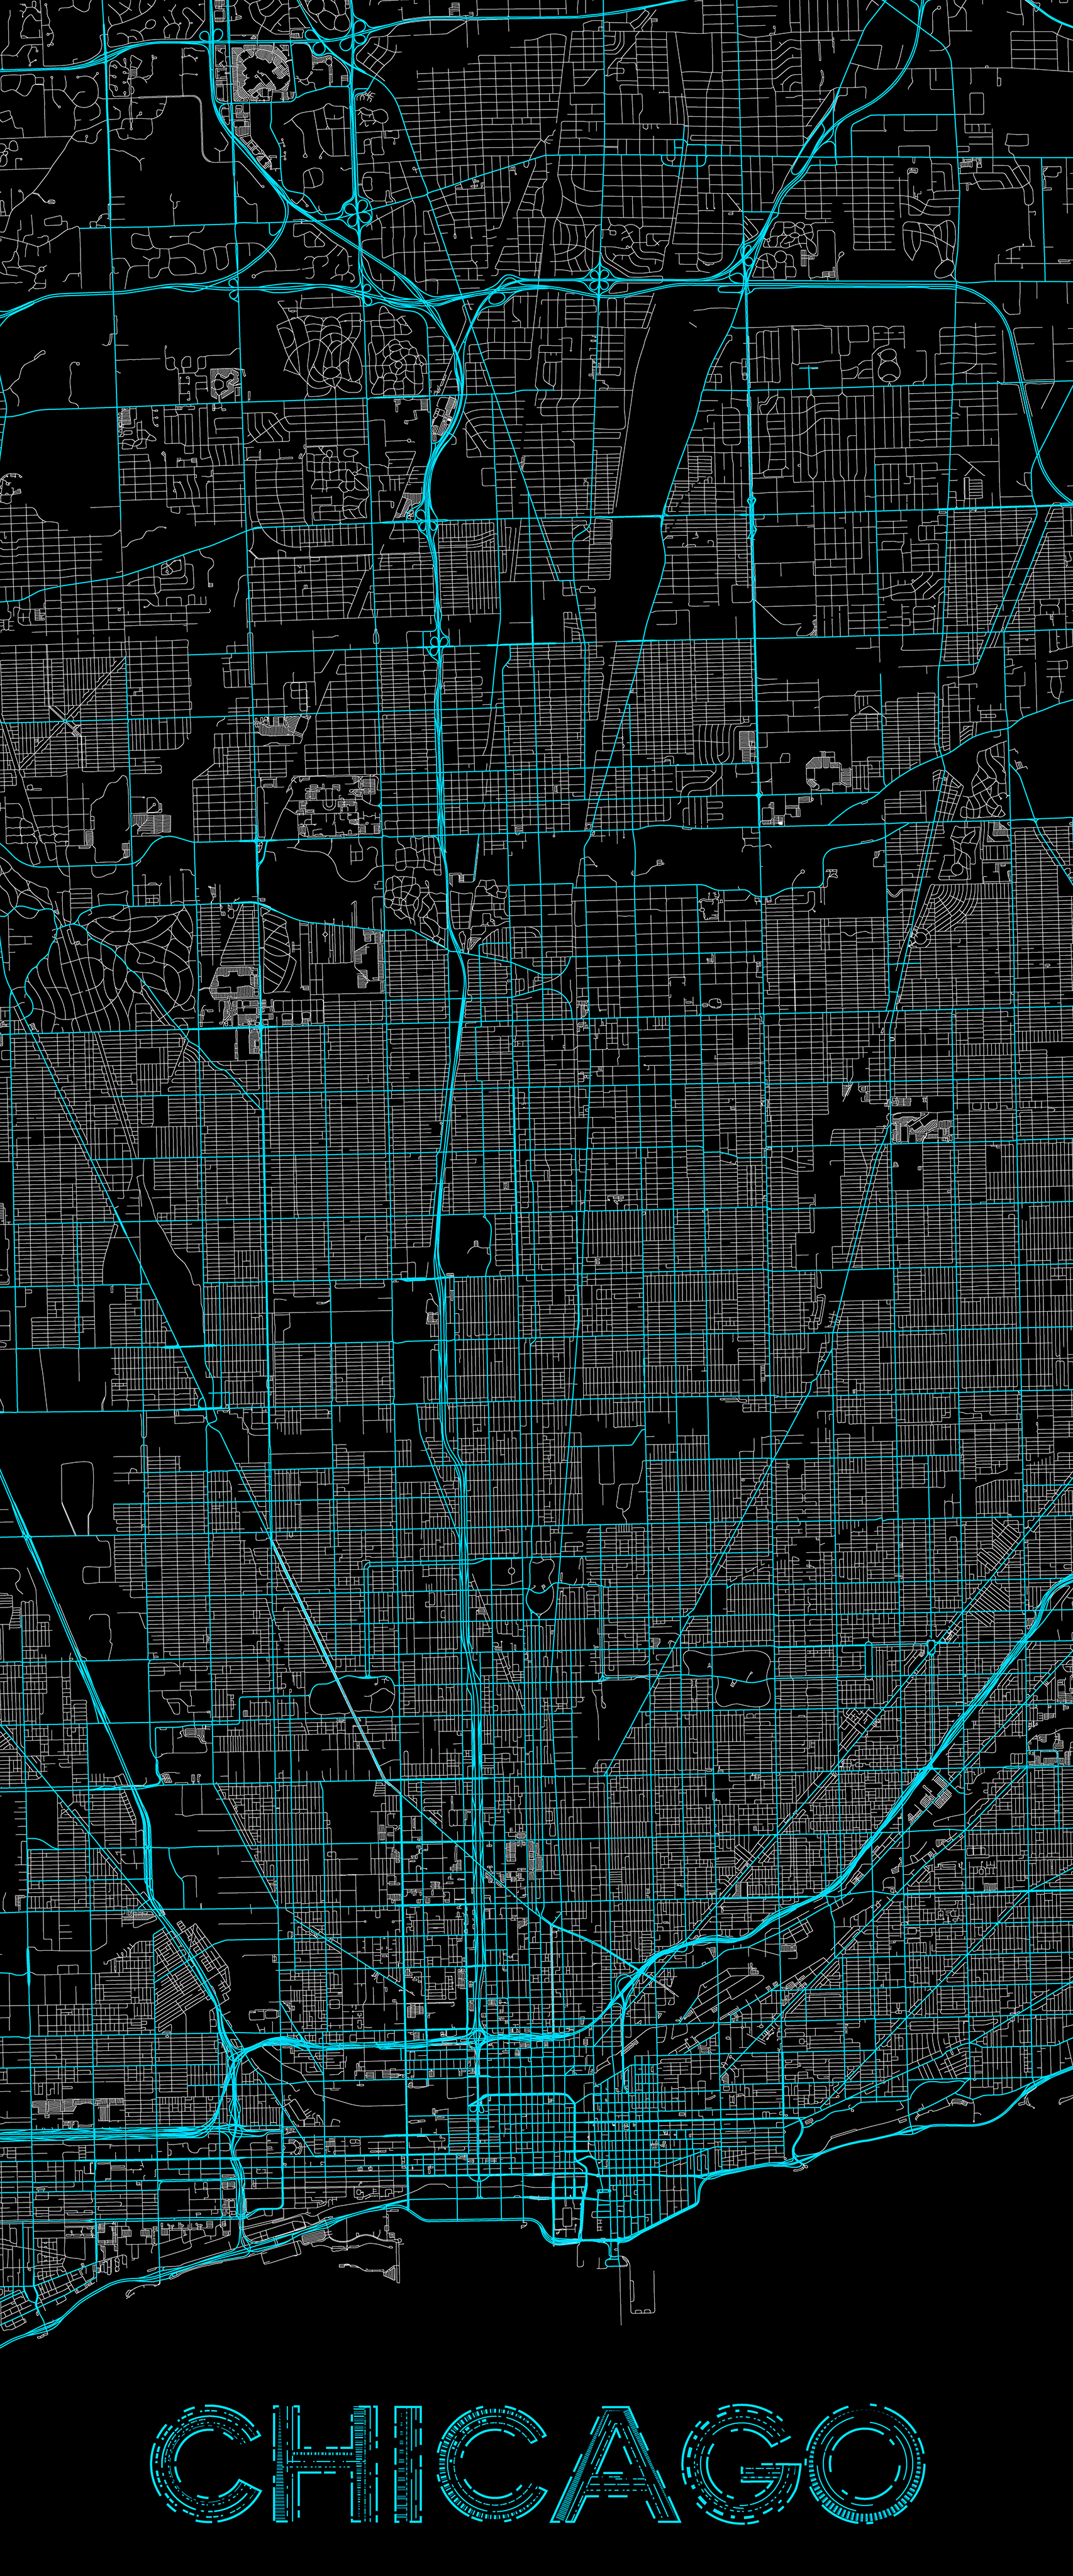 City map illustration of Chicago created using Maperitive, OpenStreetMap and Adobe Illustrator.